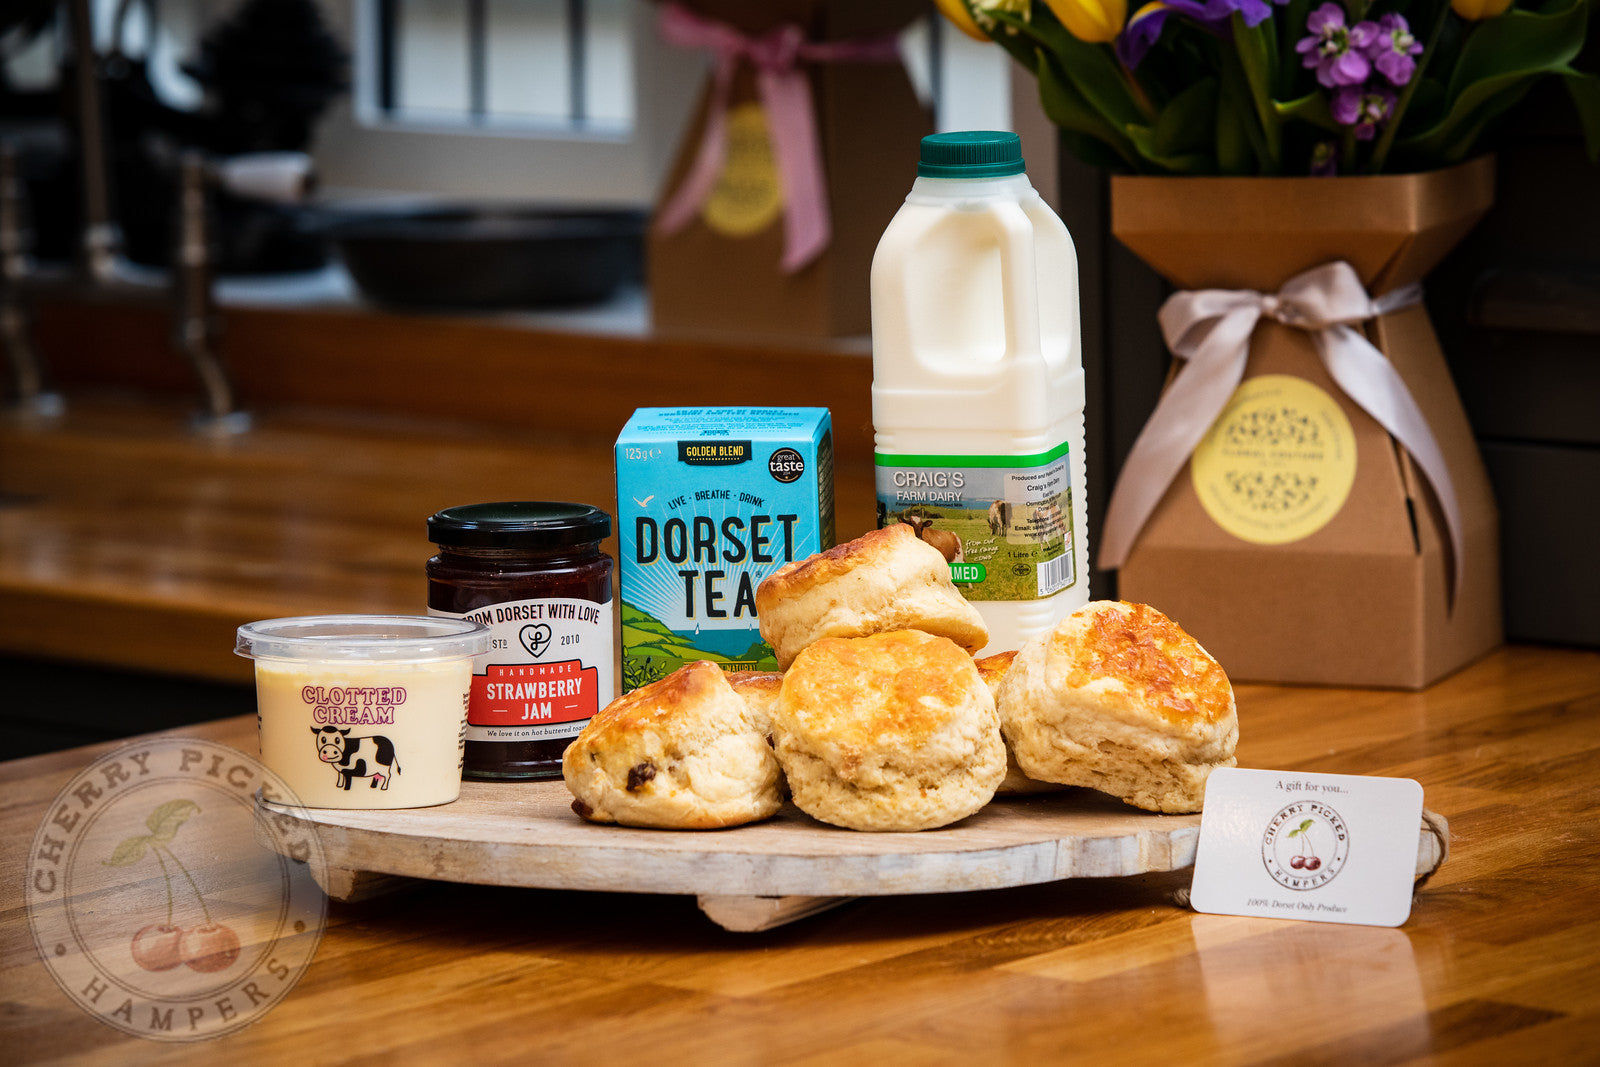 Dorset Cream Tea Welcome Hamper